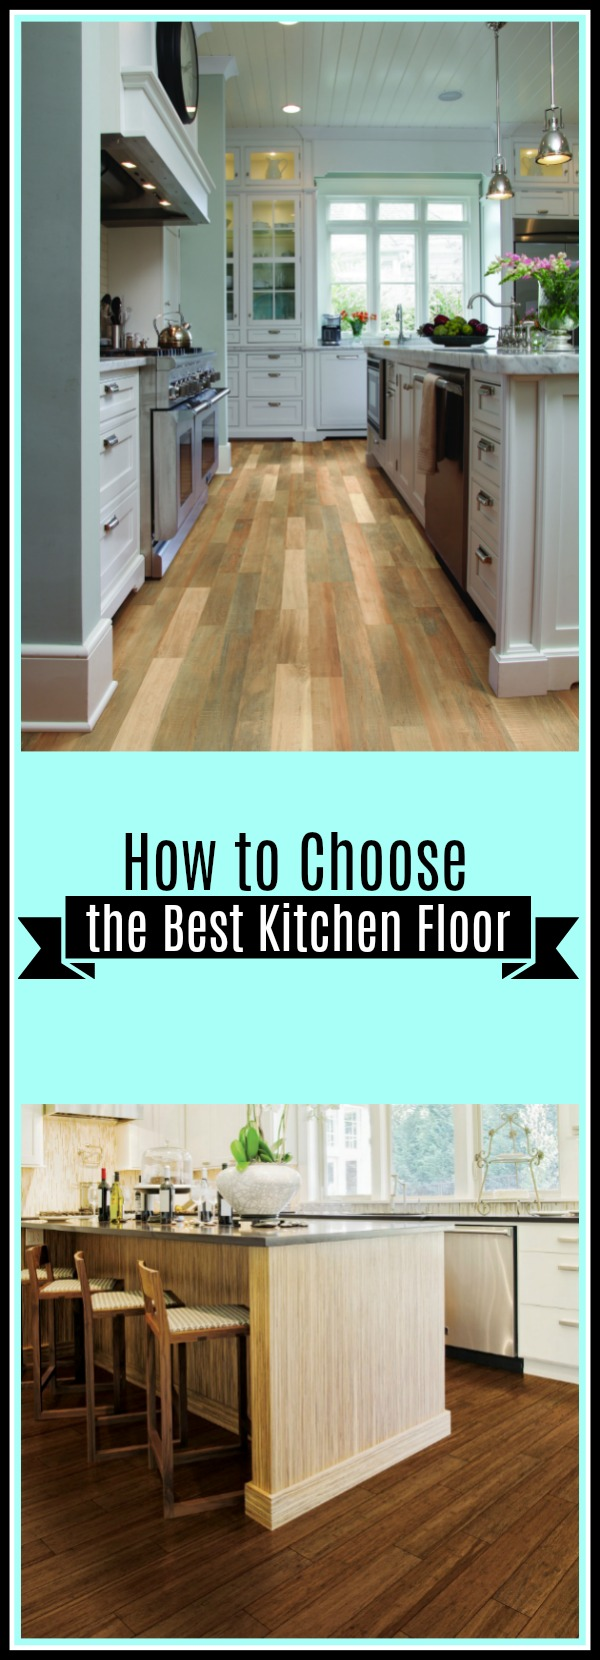 How to Choose the Best Kitchen Floor - FlooringInc Blog